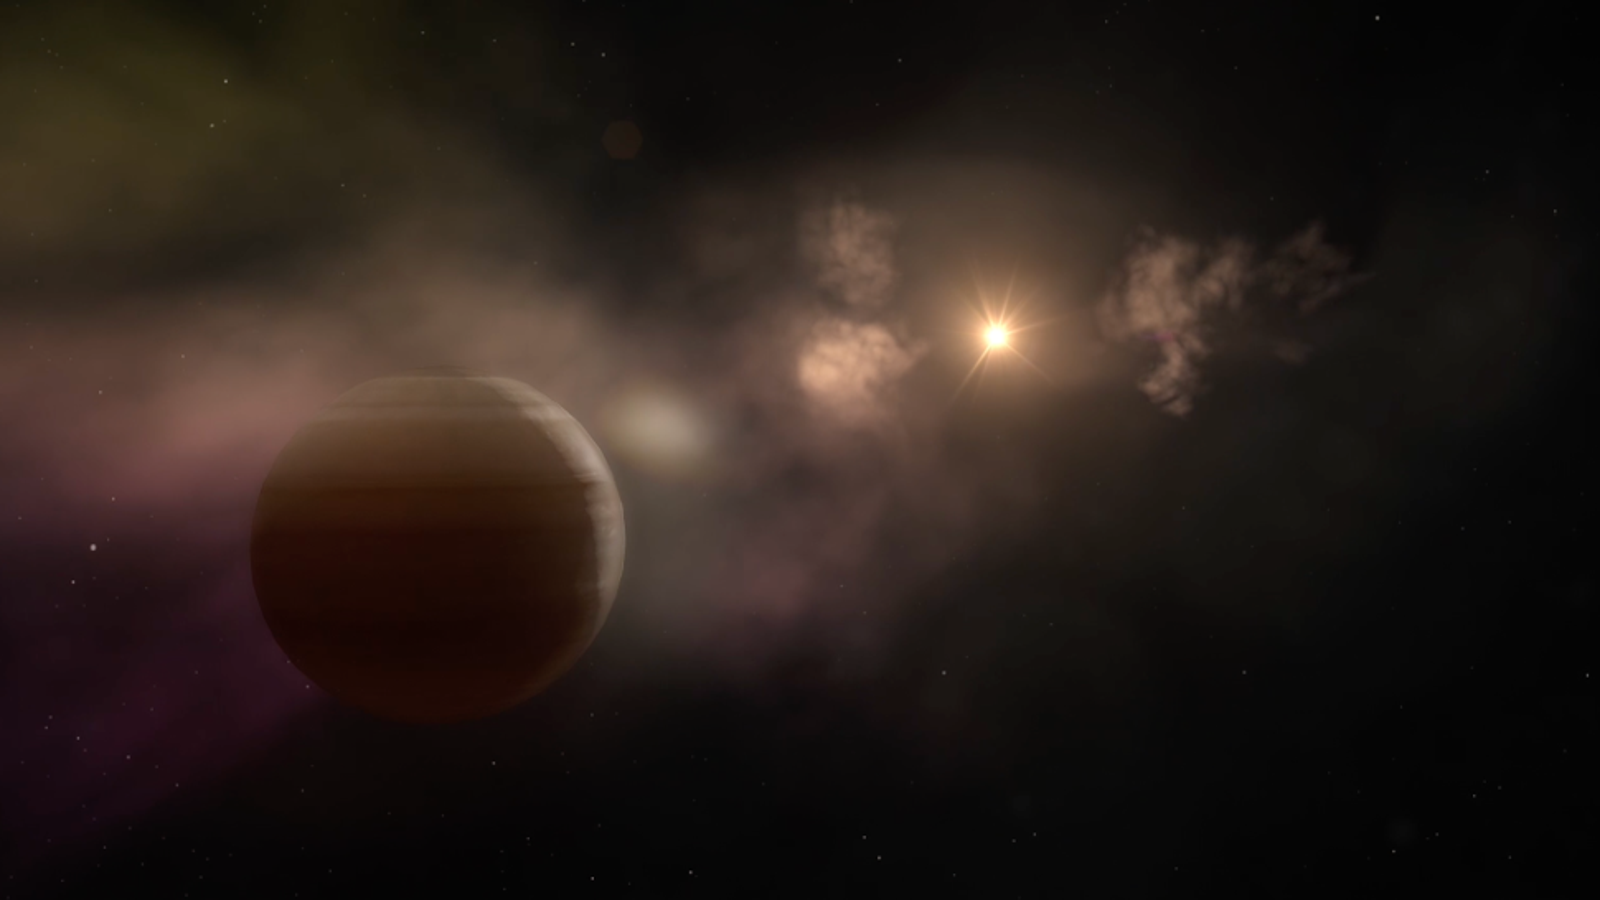 Blinking Star Appears to Be Devouring Its Own Planetary Offspring